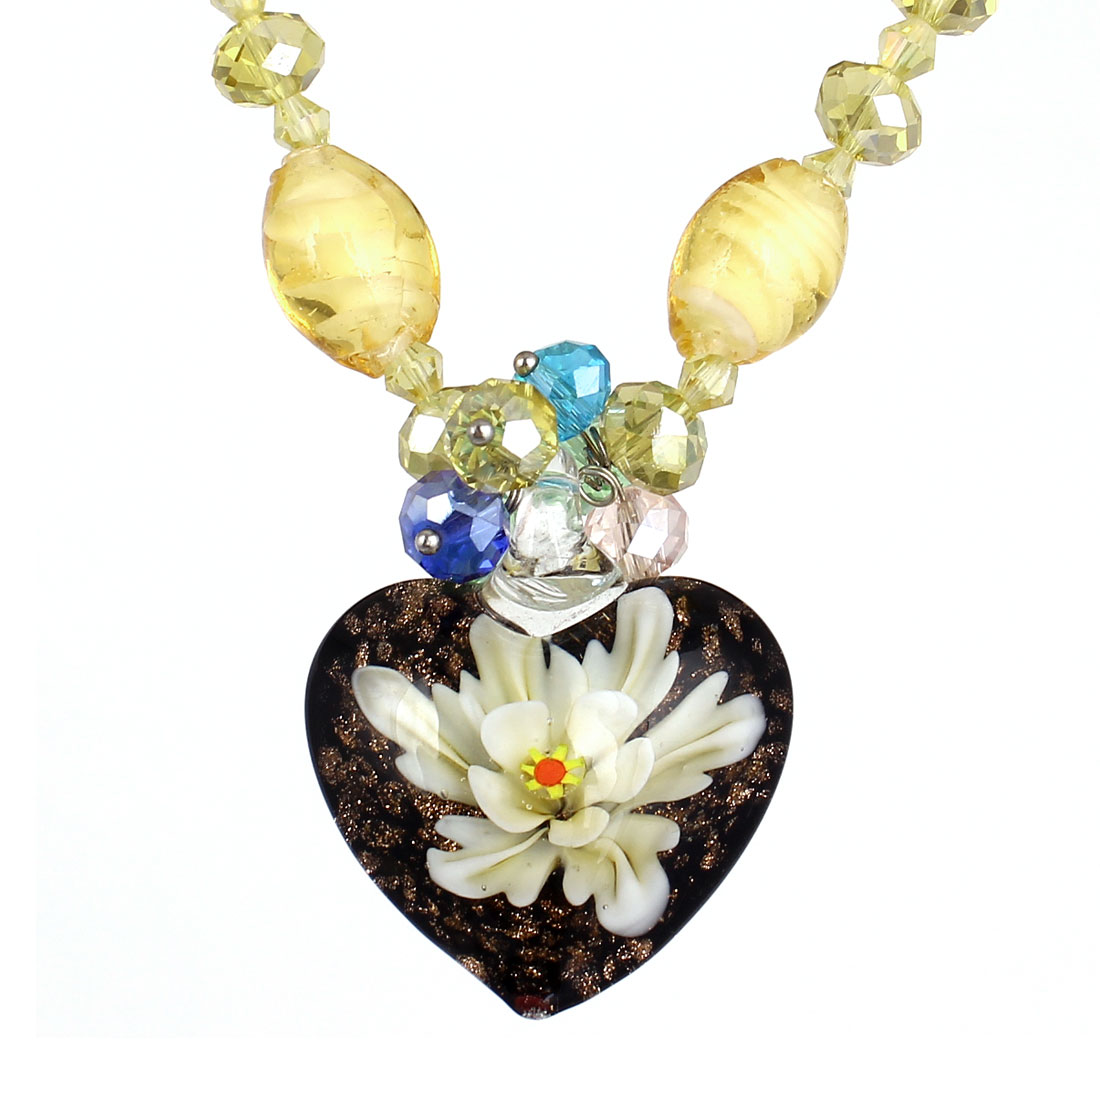 Yellow Rhinestone Inlaid Neck String Heart Booming Flower Press Glass Pendant Necklace for Lady